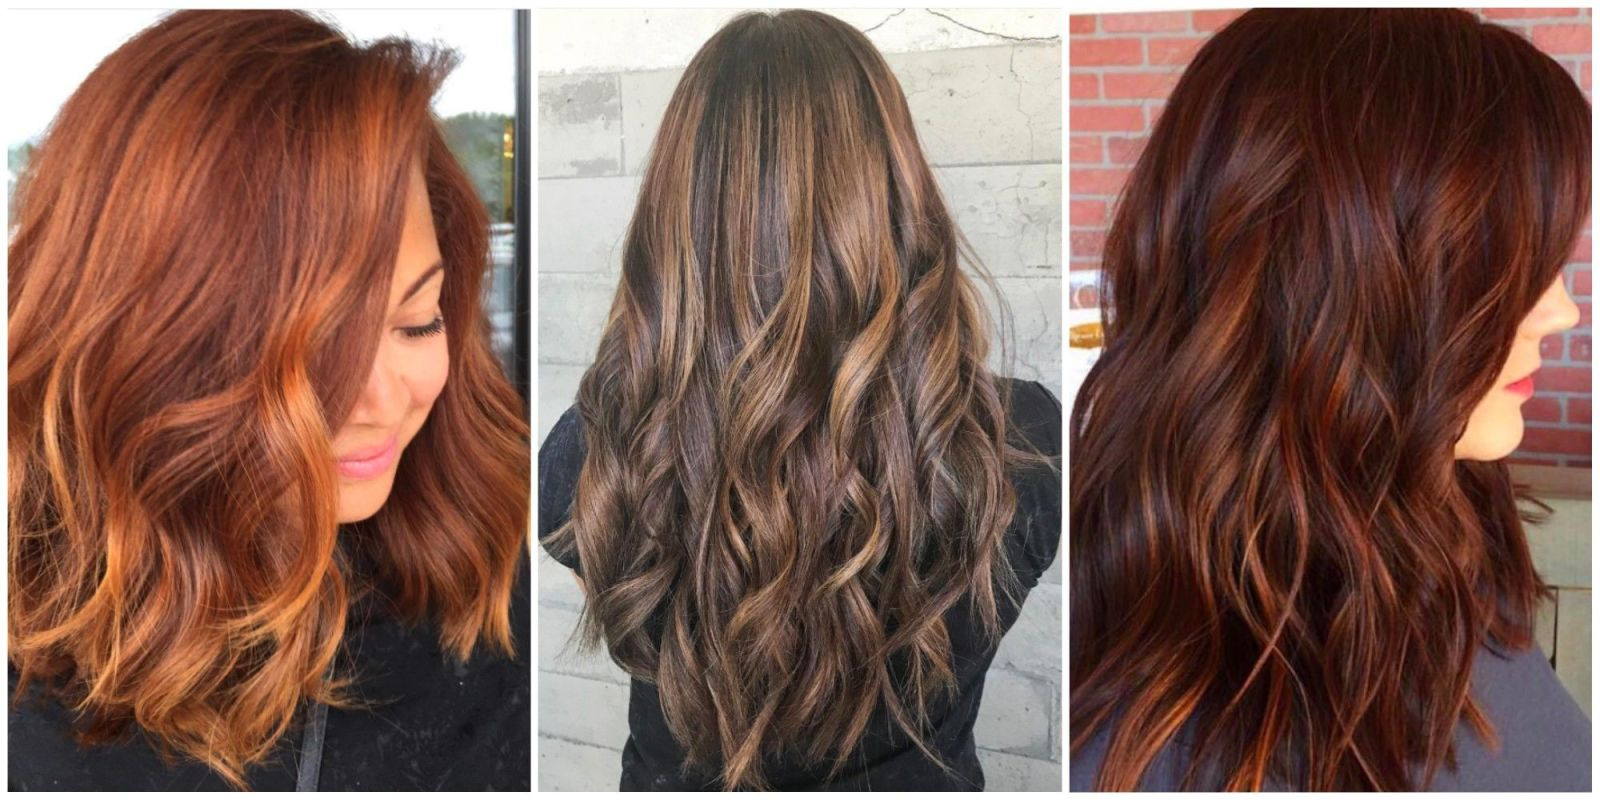 Hair color images - Hair Color Images 22